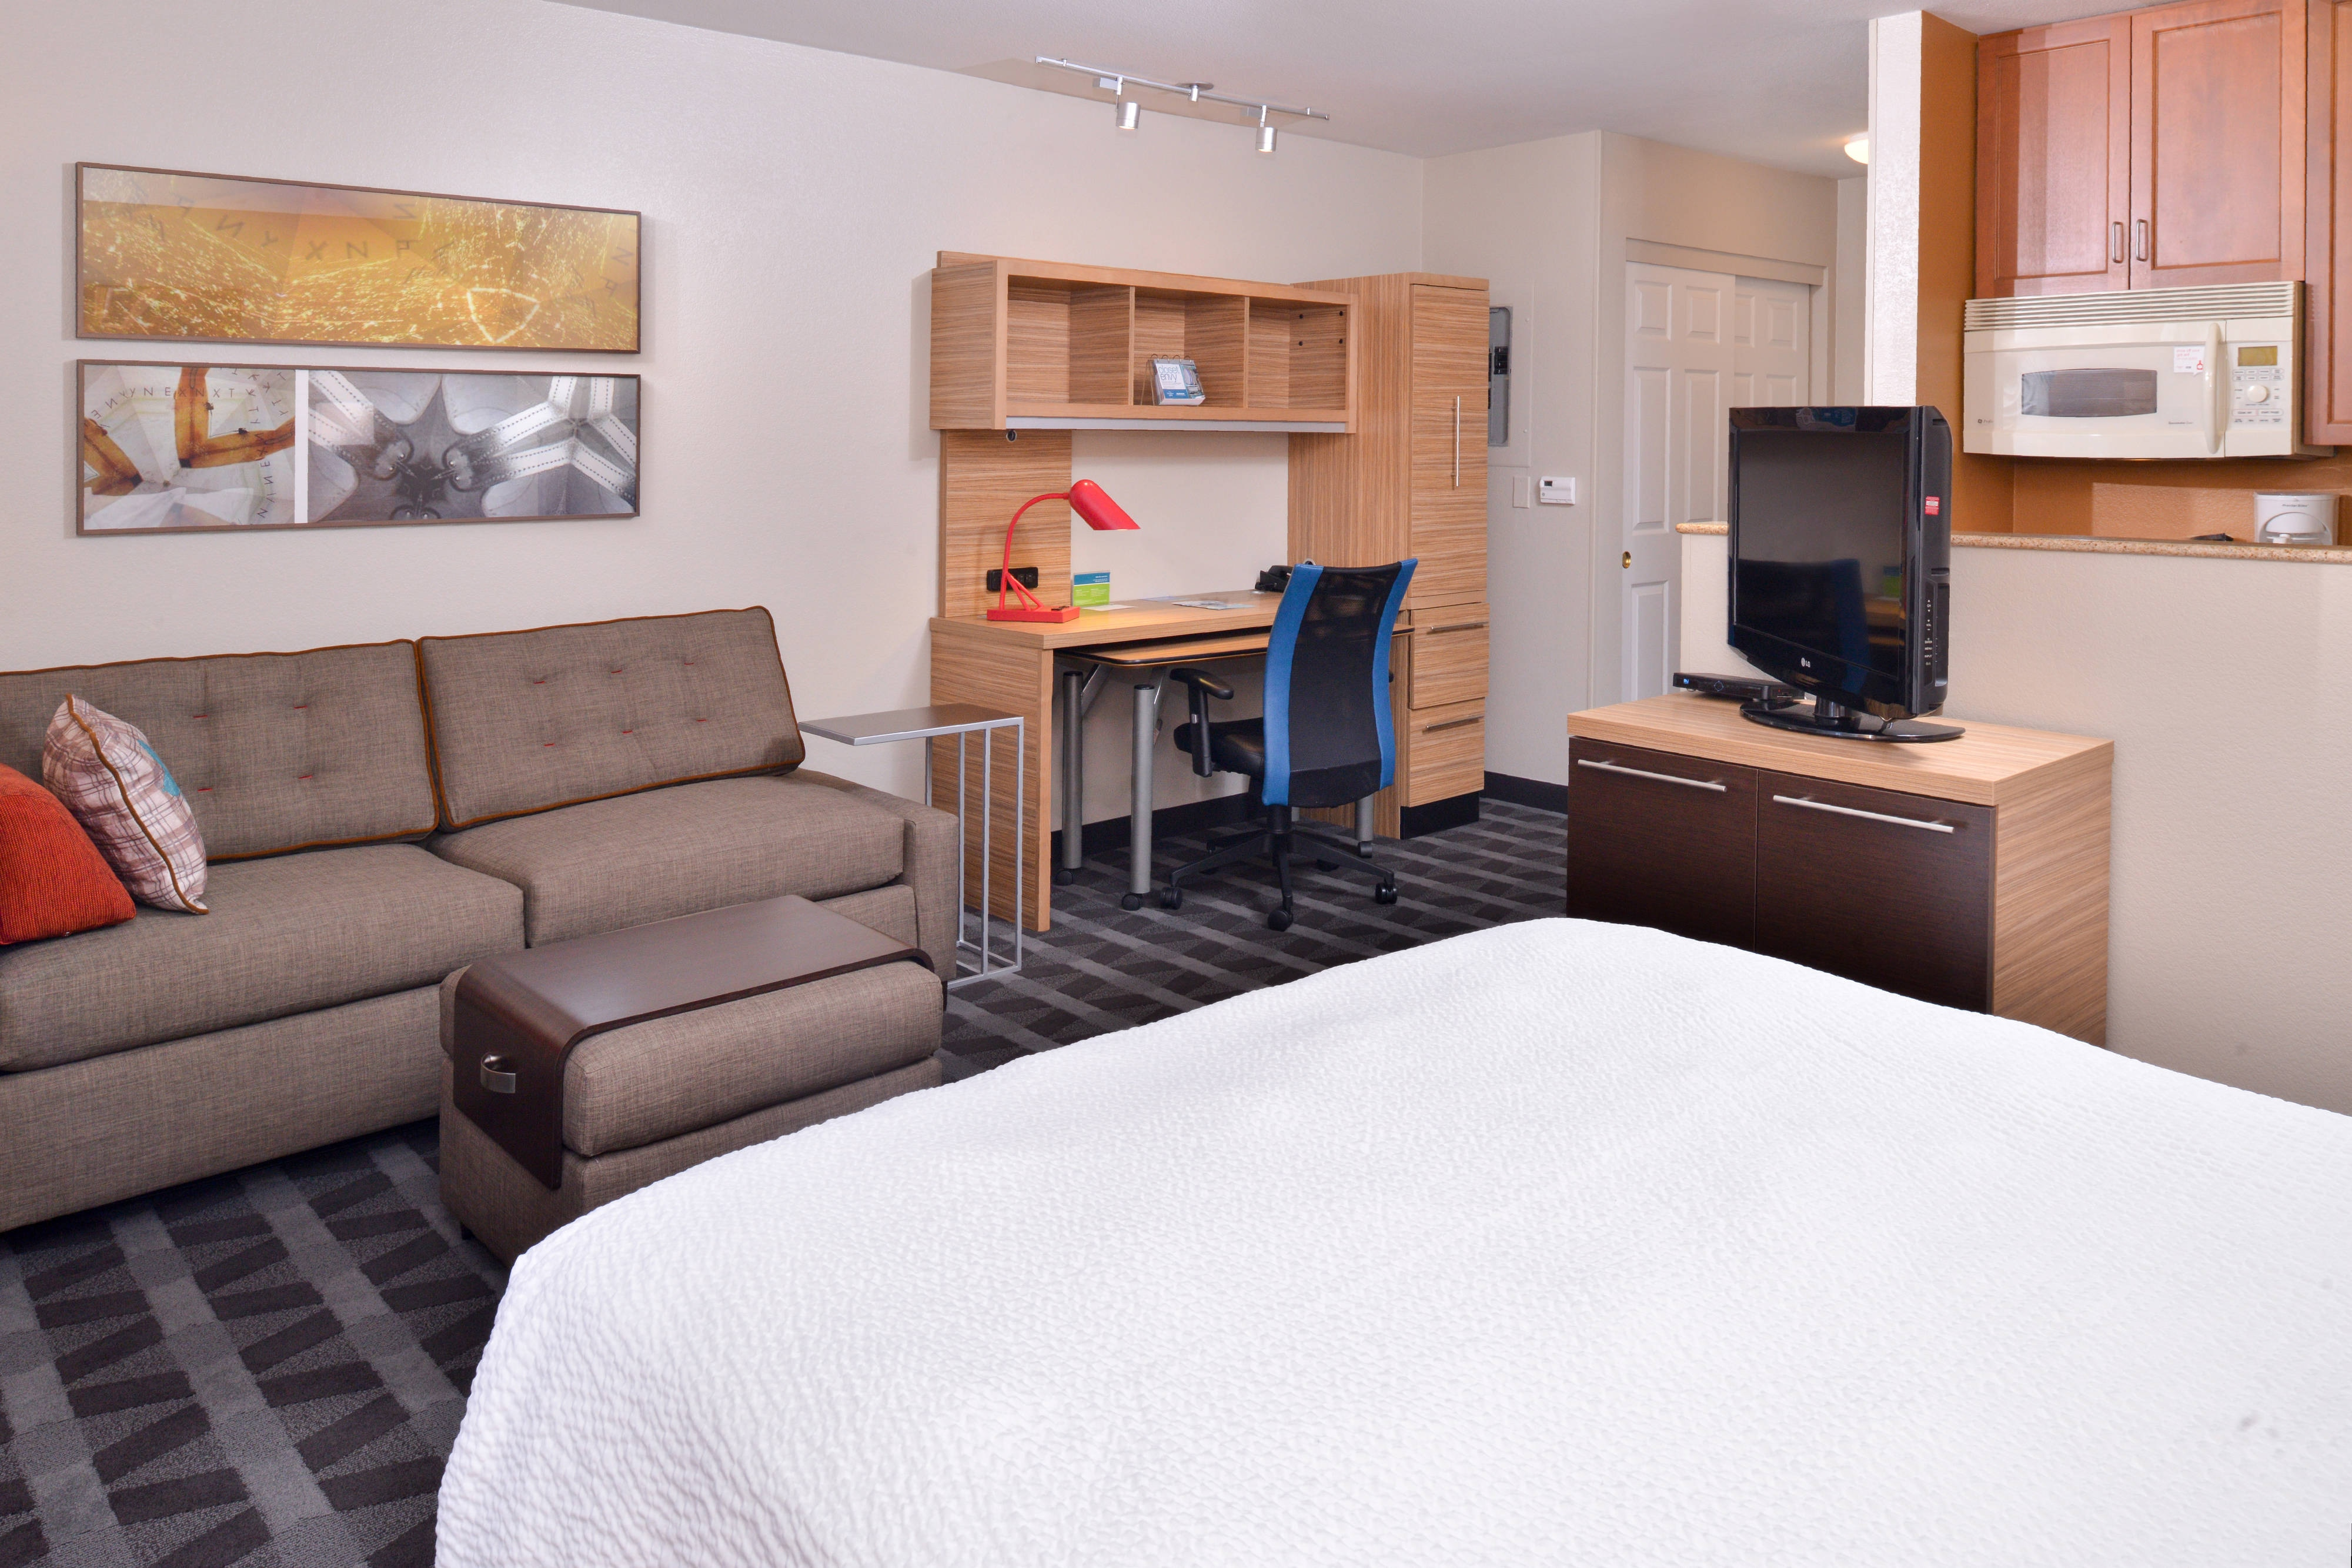 Hotels In Rancho Cucamonga Ca Towneplace Suites Ontario Airport